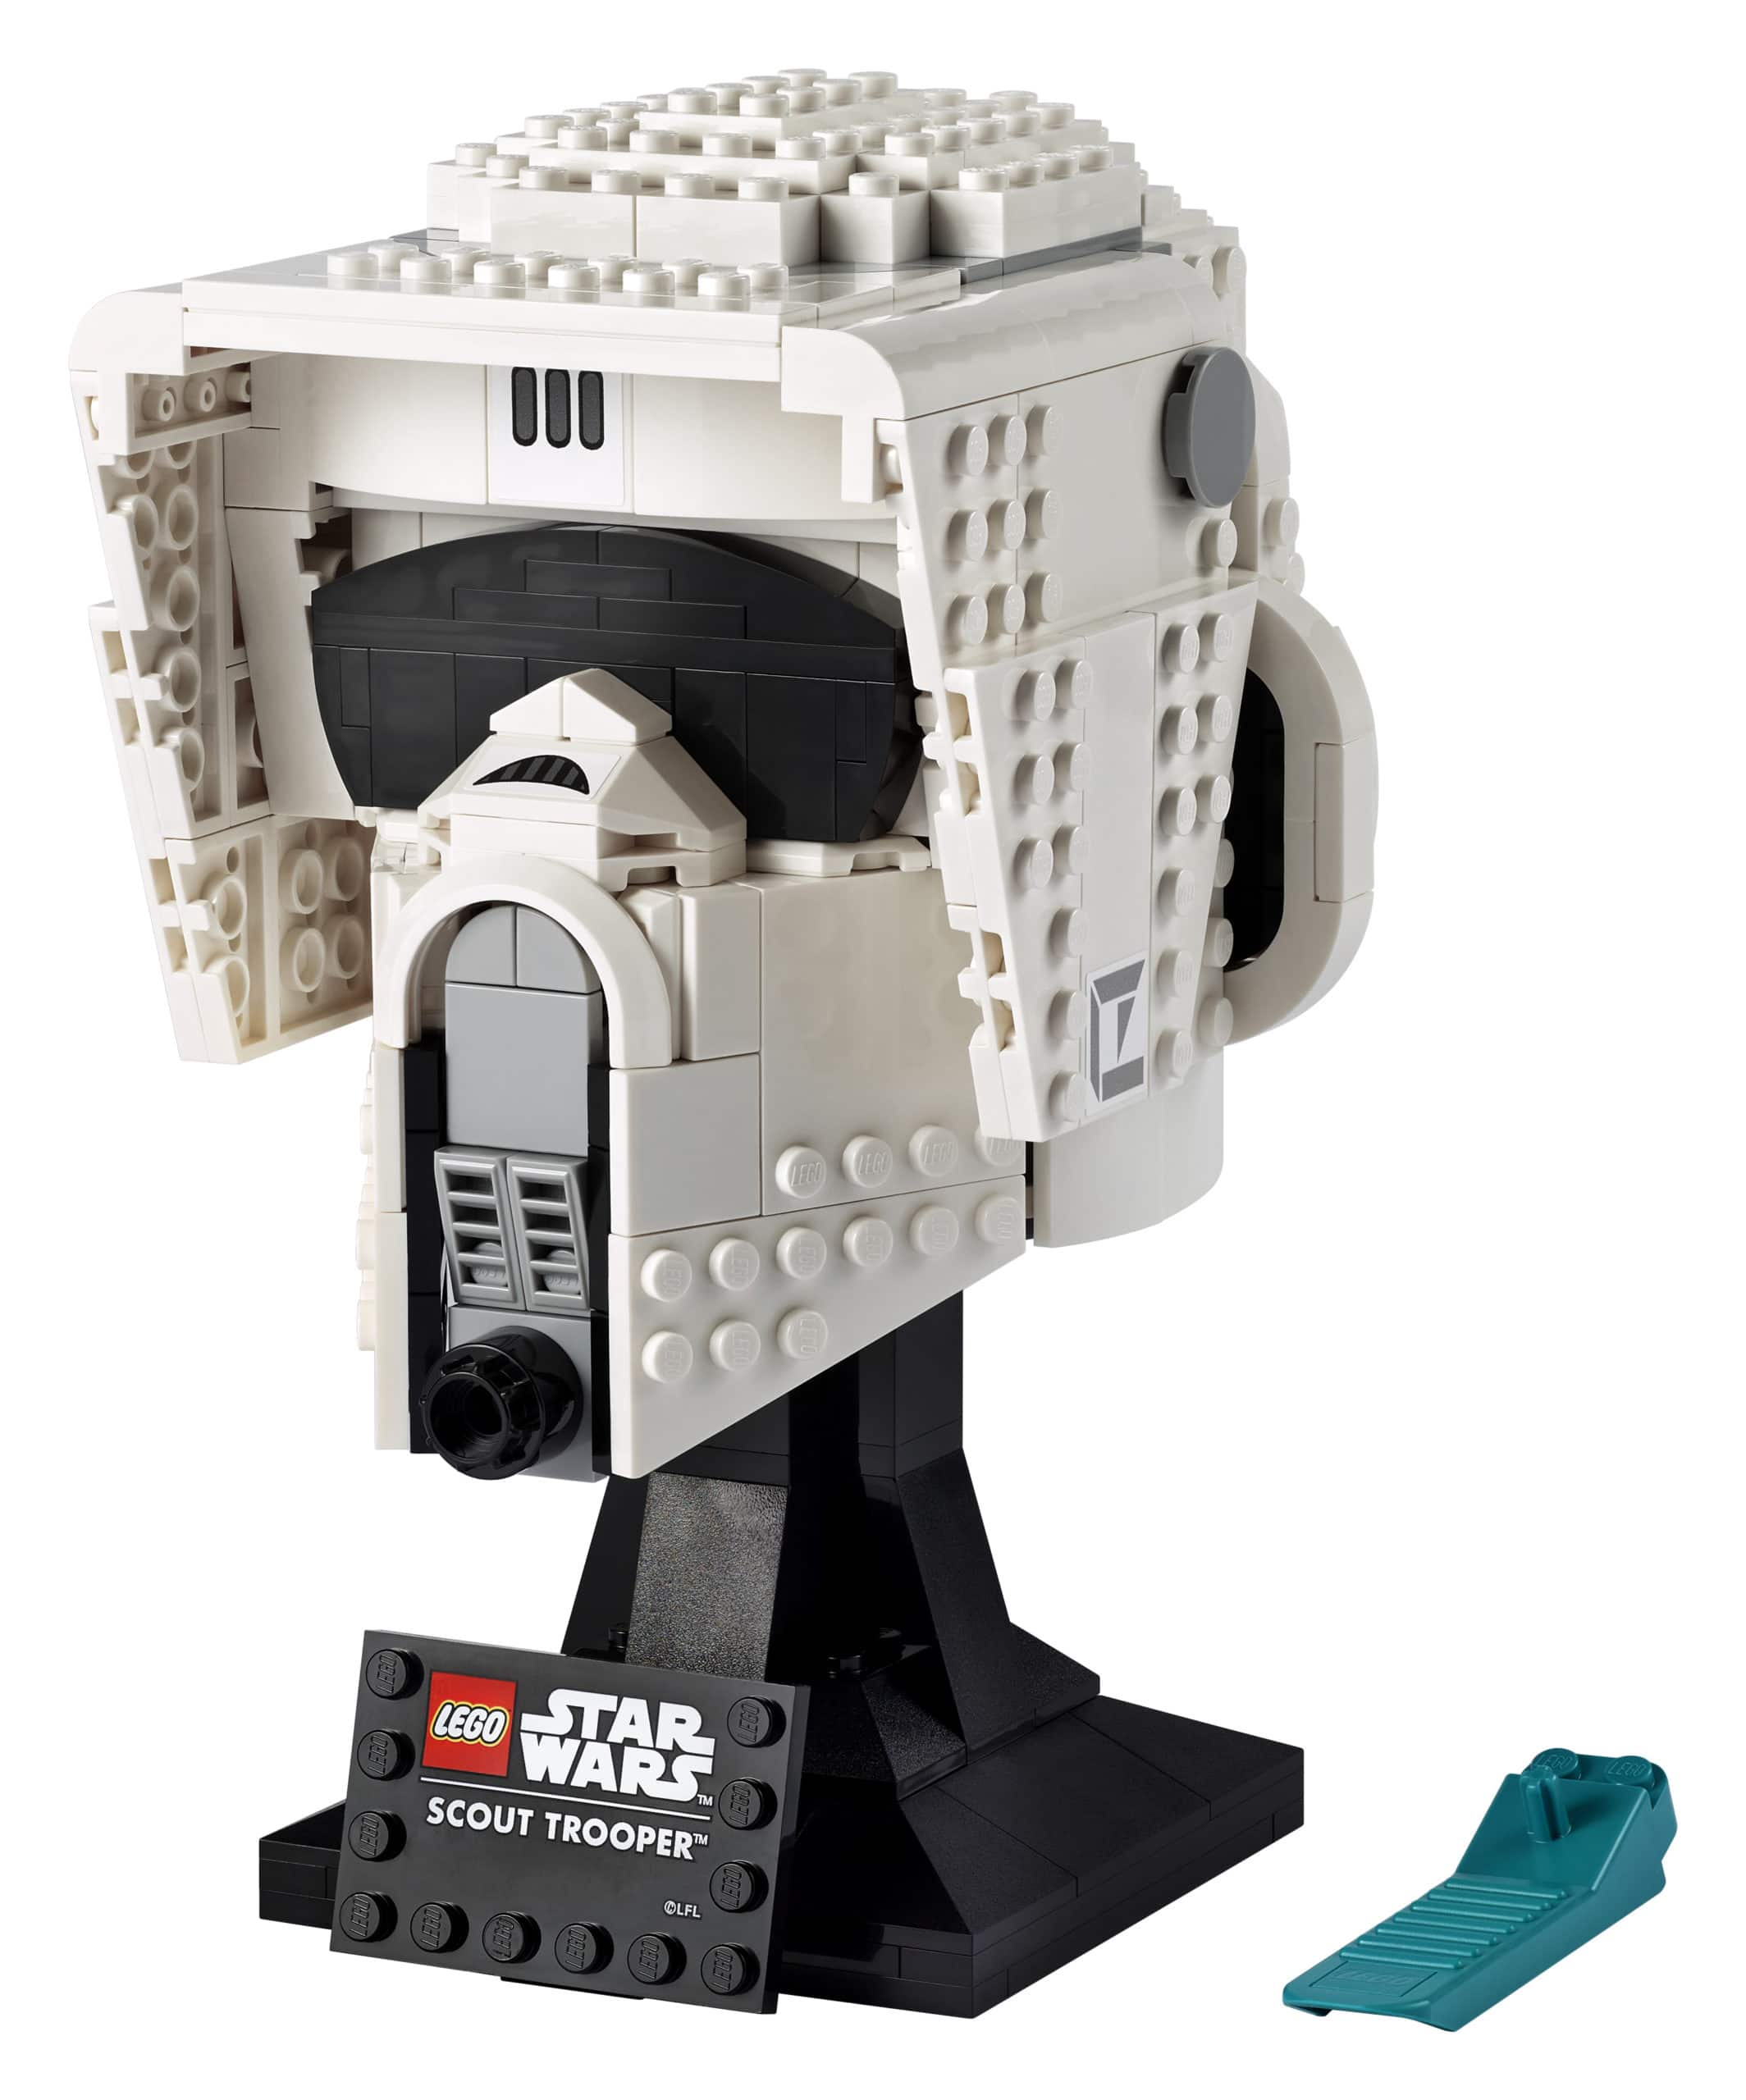 LEGO unveils Darth Vader and Scout Trooper helmet sets ahead of Star Wars Day 15